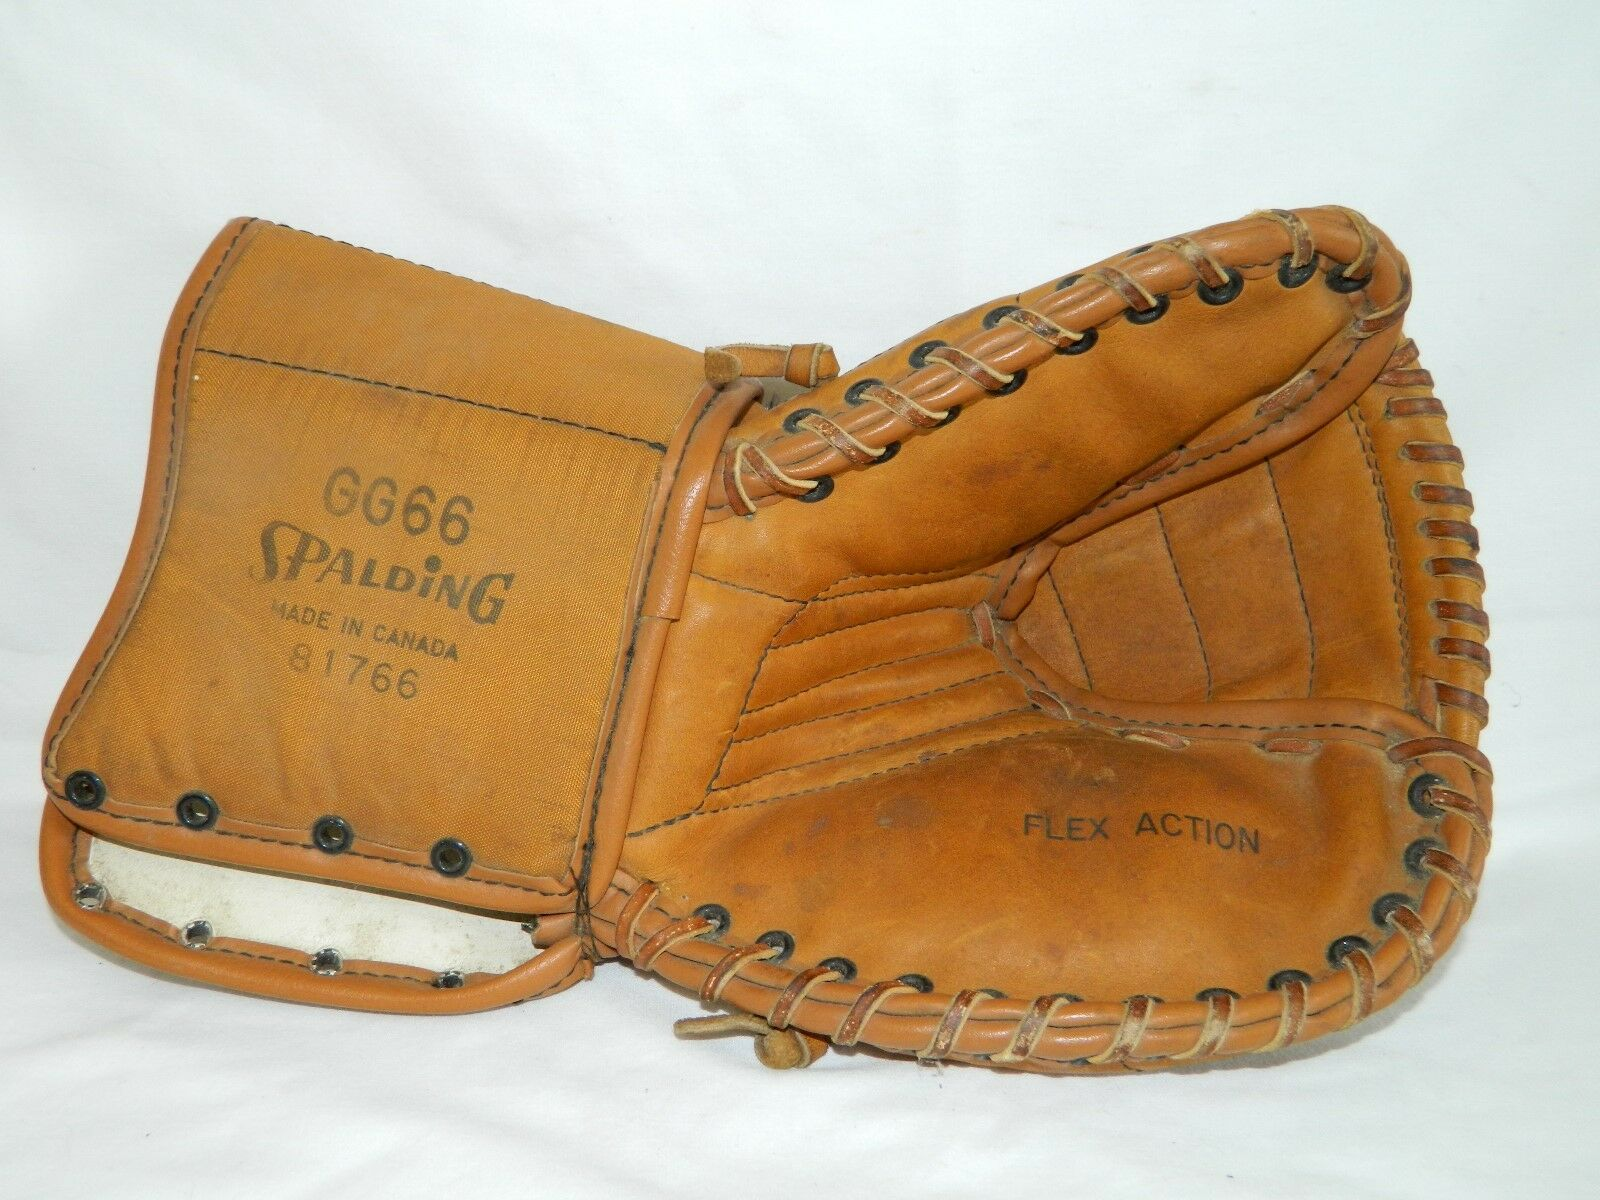 Vintage Leather Cloth Spalding GG66 Lefthand Goalie Catcher